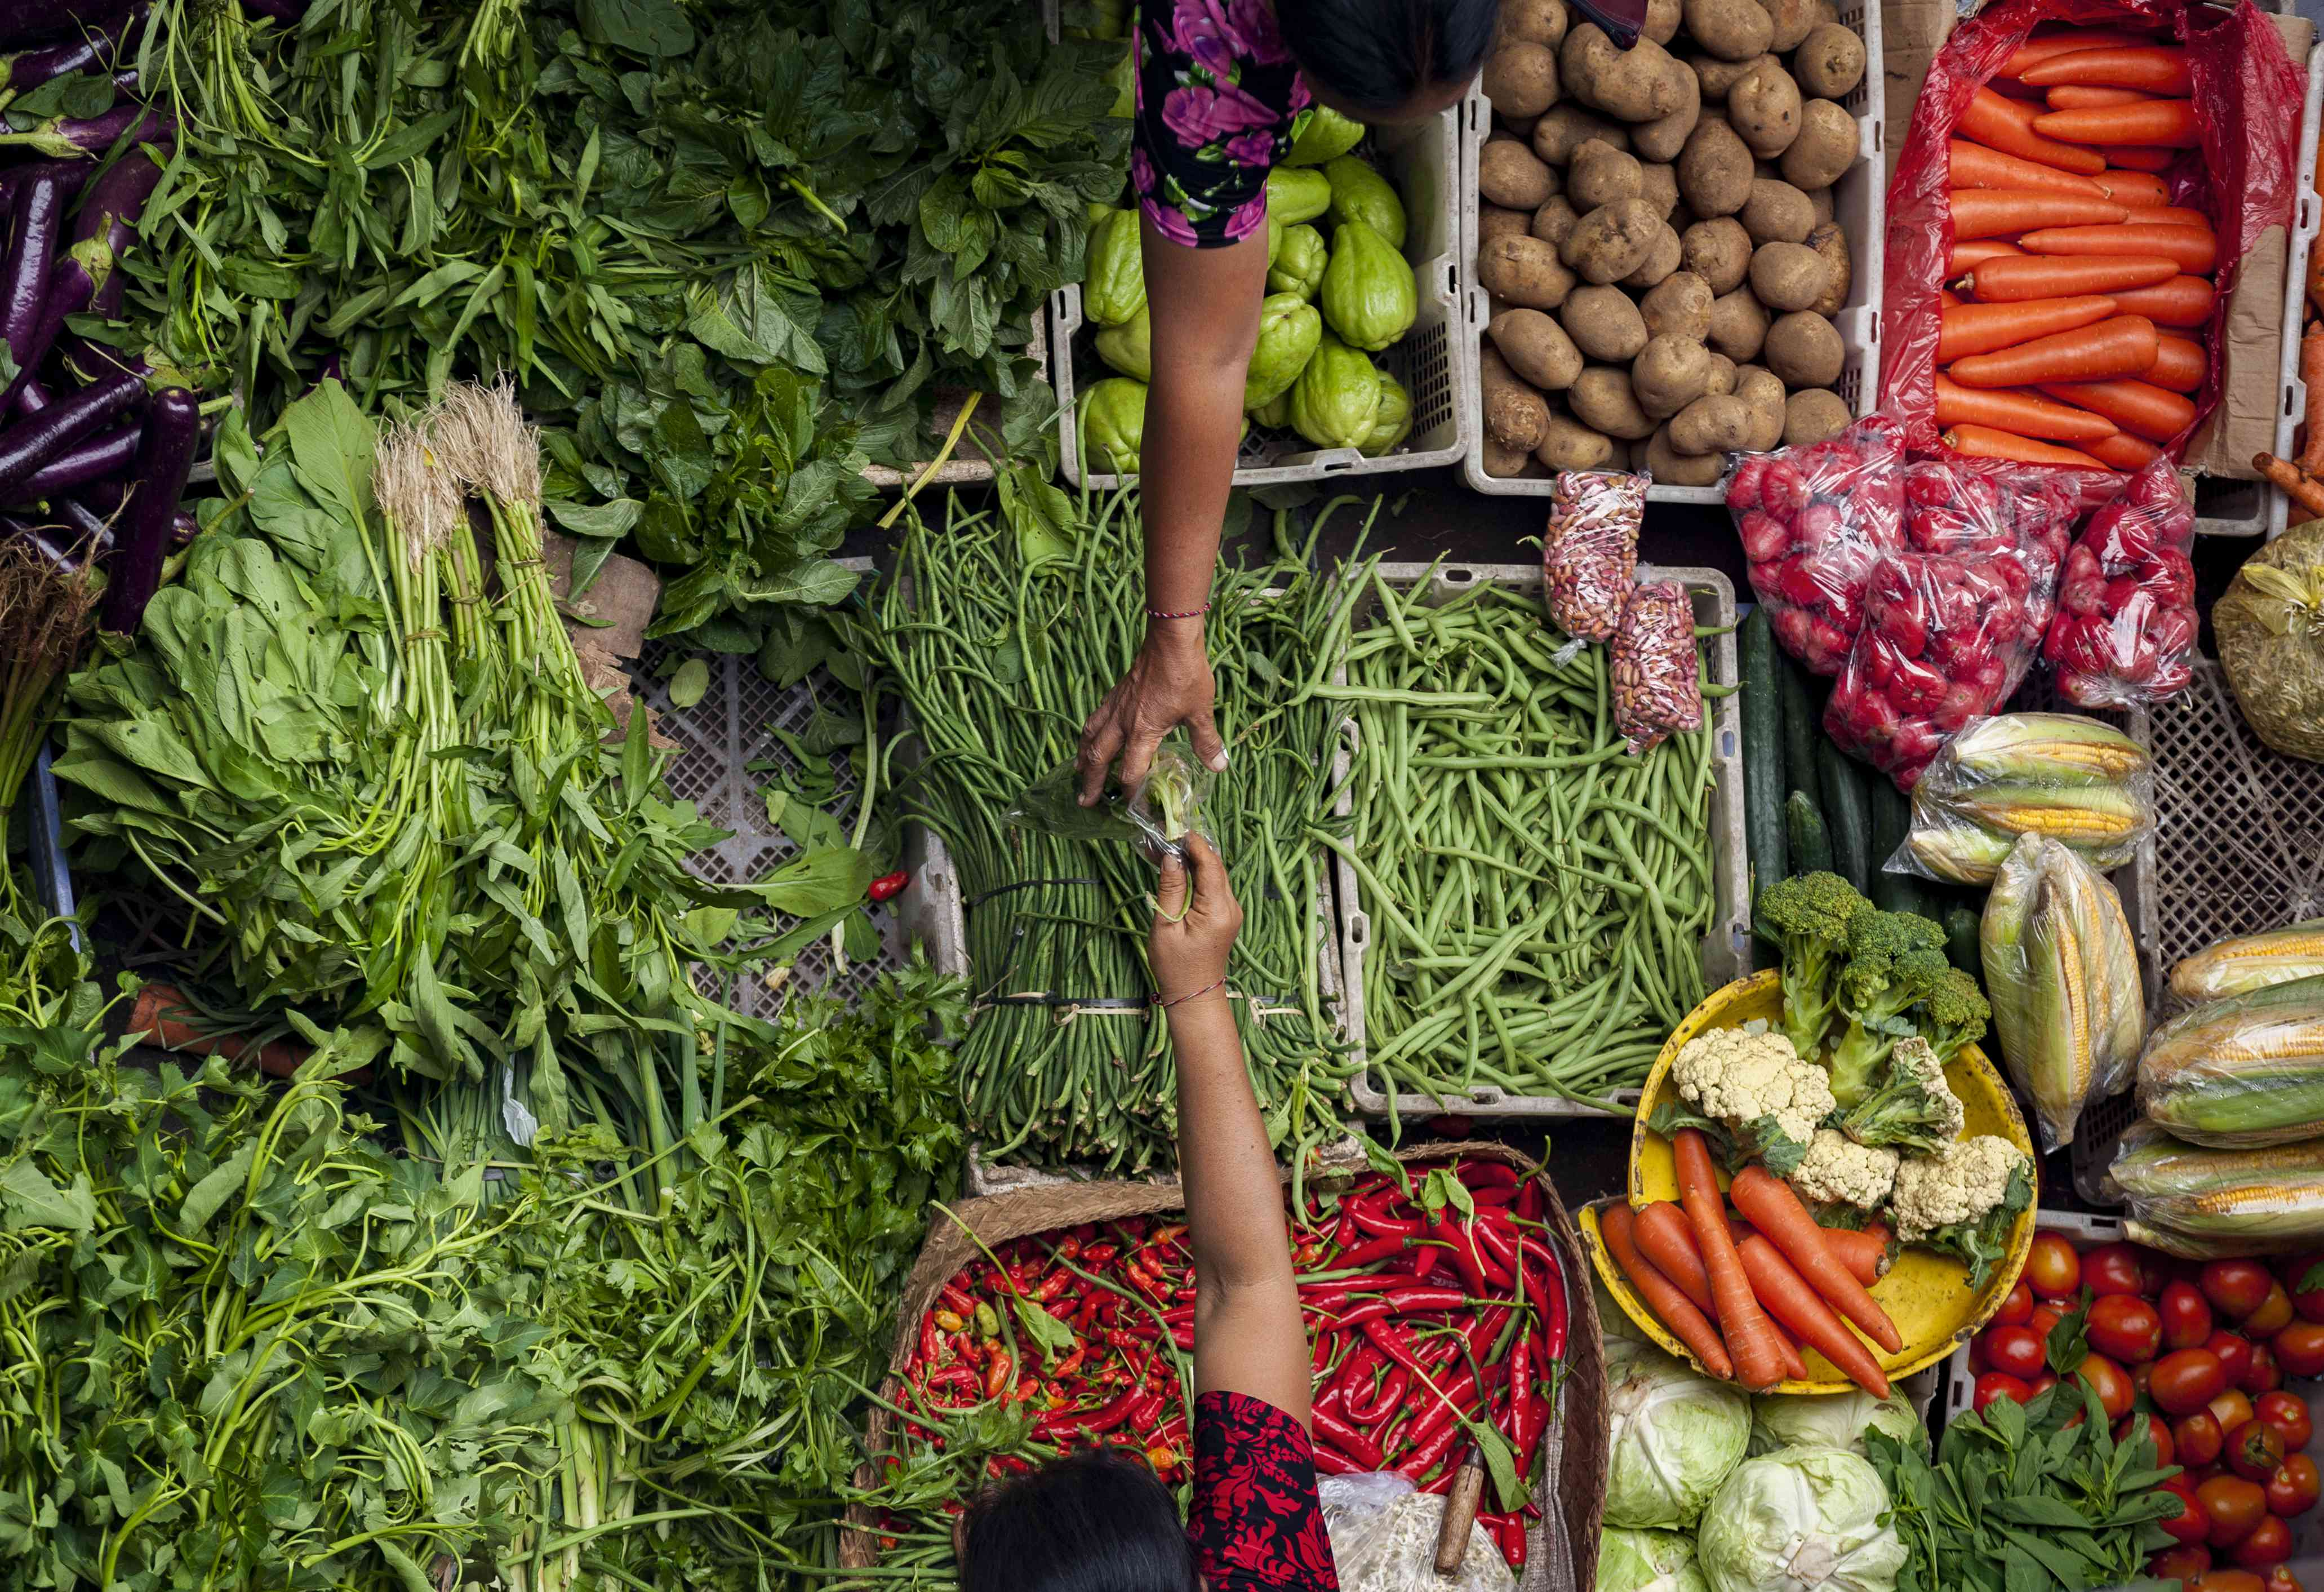 Asian Produce and Market